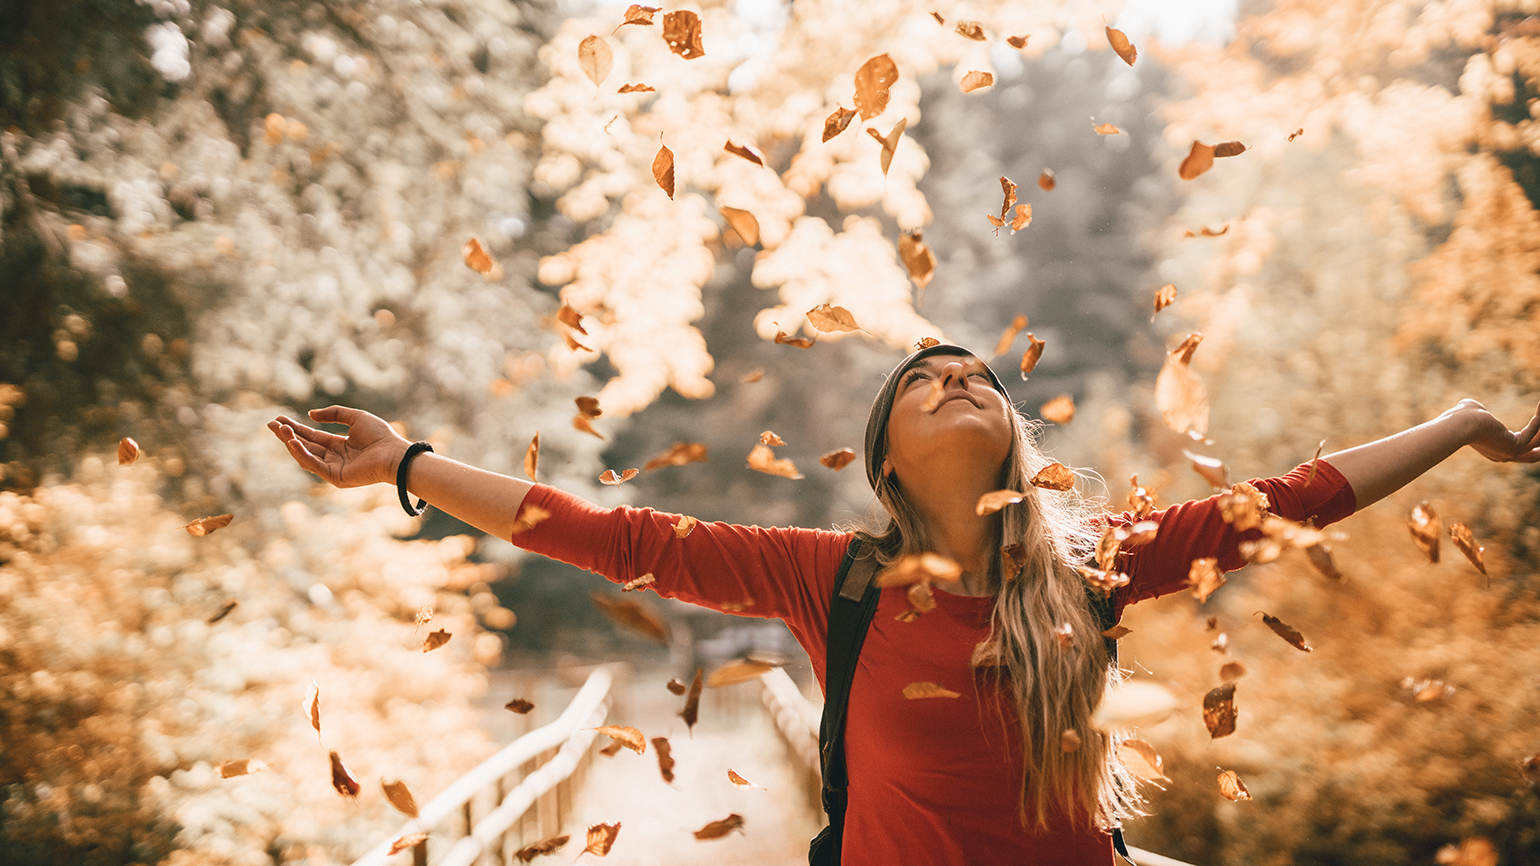 A woman stands, arms outstretched, in the falling leaves of autumn